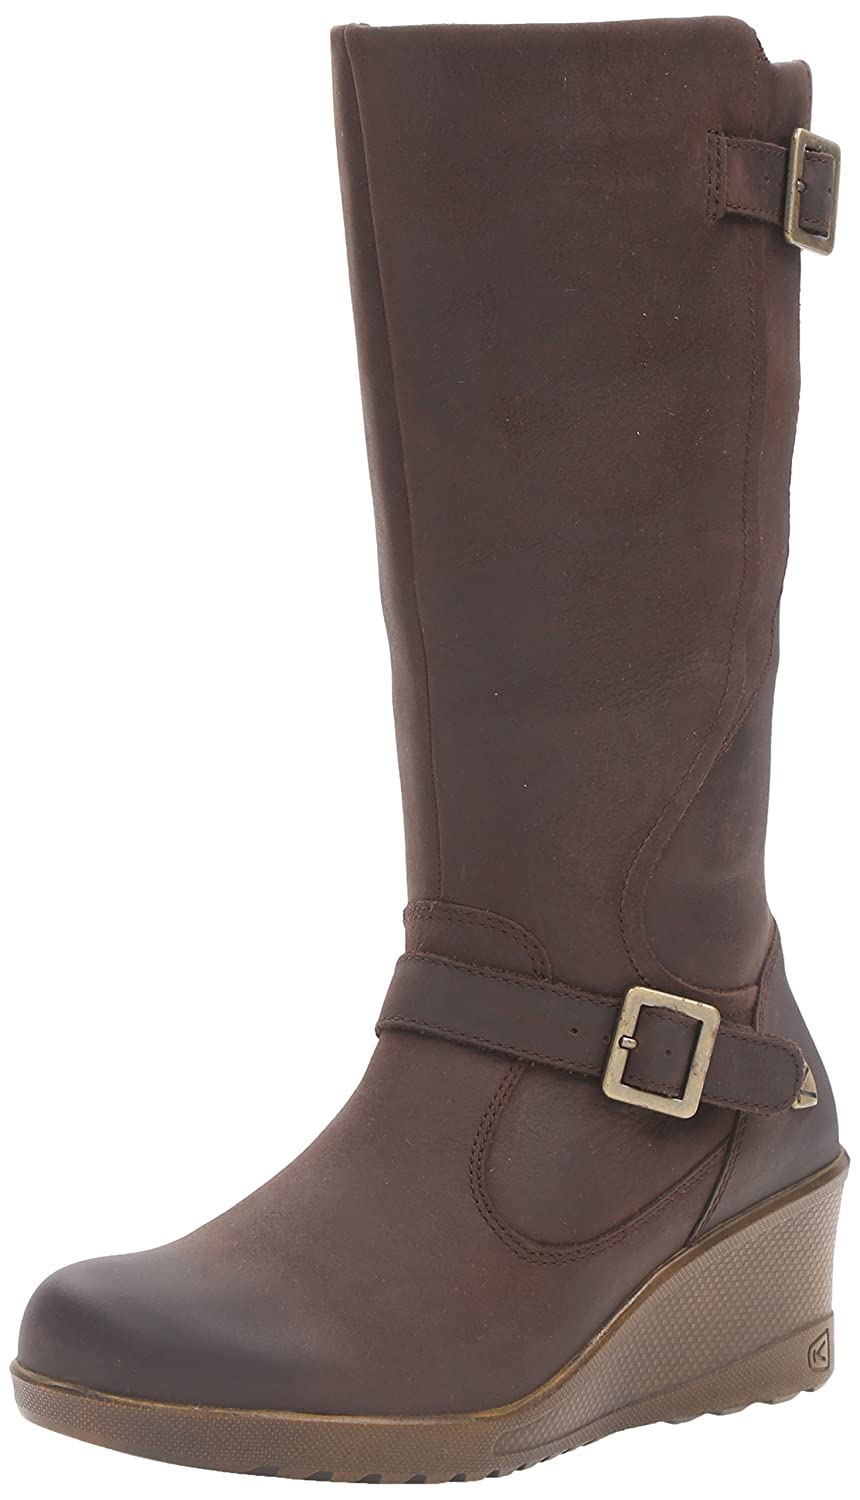 KEEN Women's Scots-w Boot B019HDPS7U 10 B(M) US|Coffee Bean